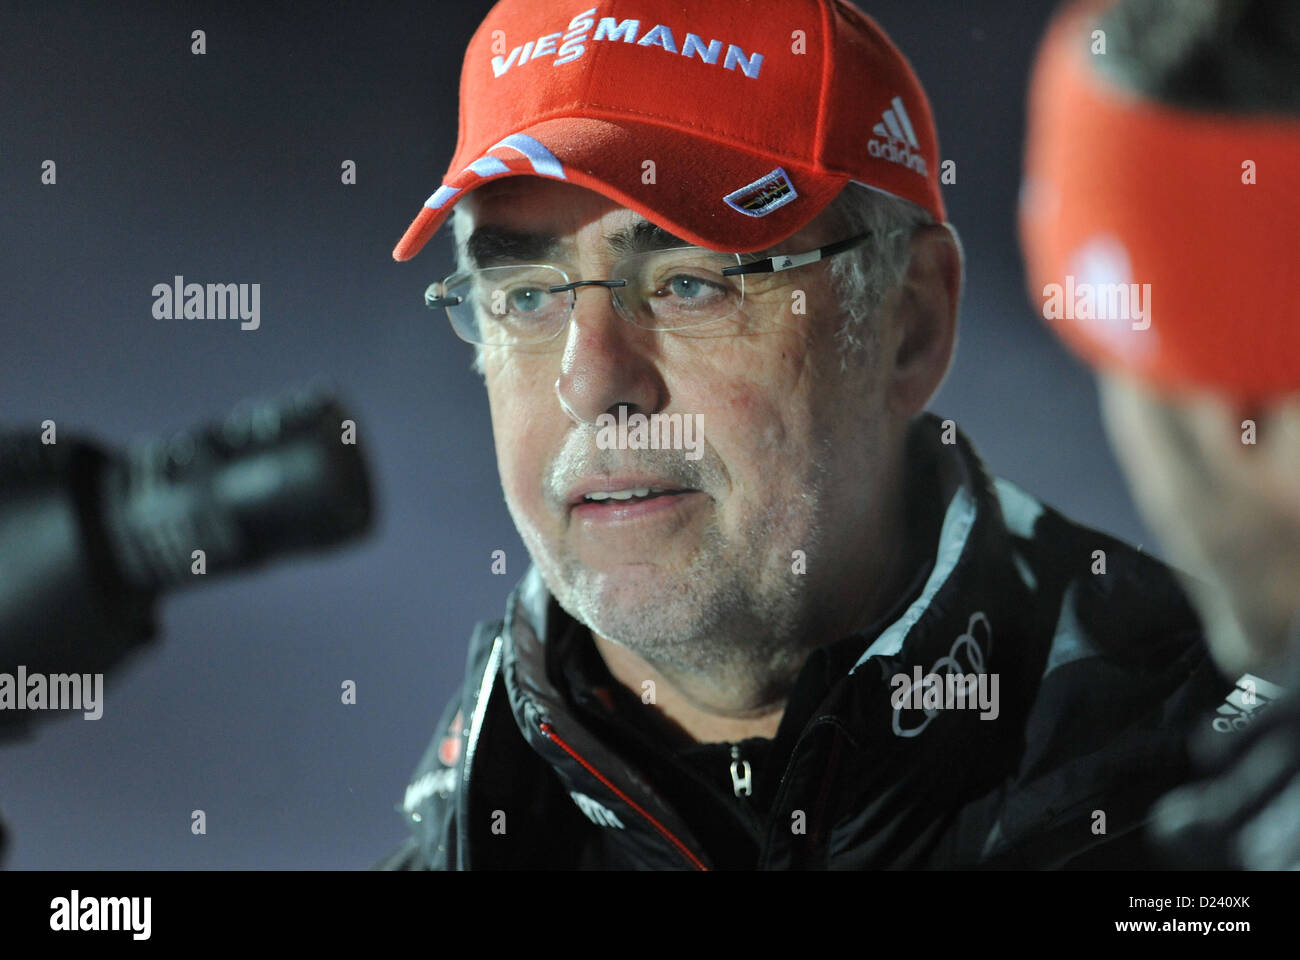 German coach Uwe Mueßiggang seen in the coaching zone during the 4 x 7.5 km relay at the Biathlon World Cup - Stock Image